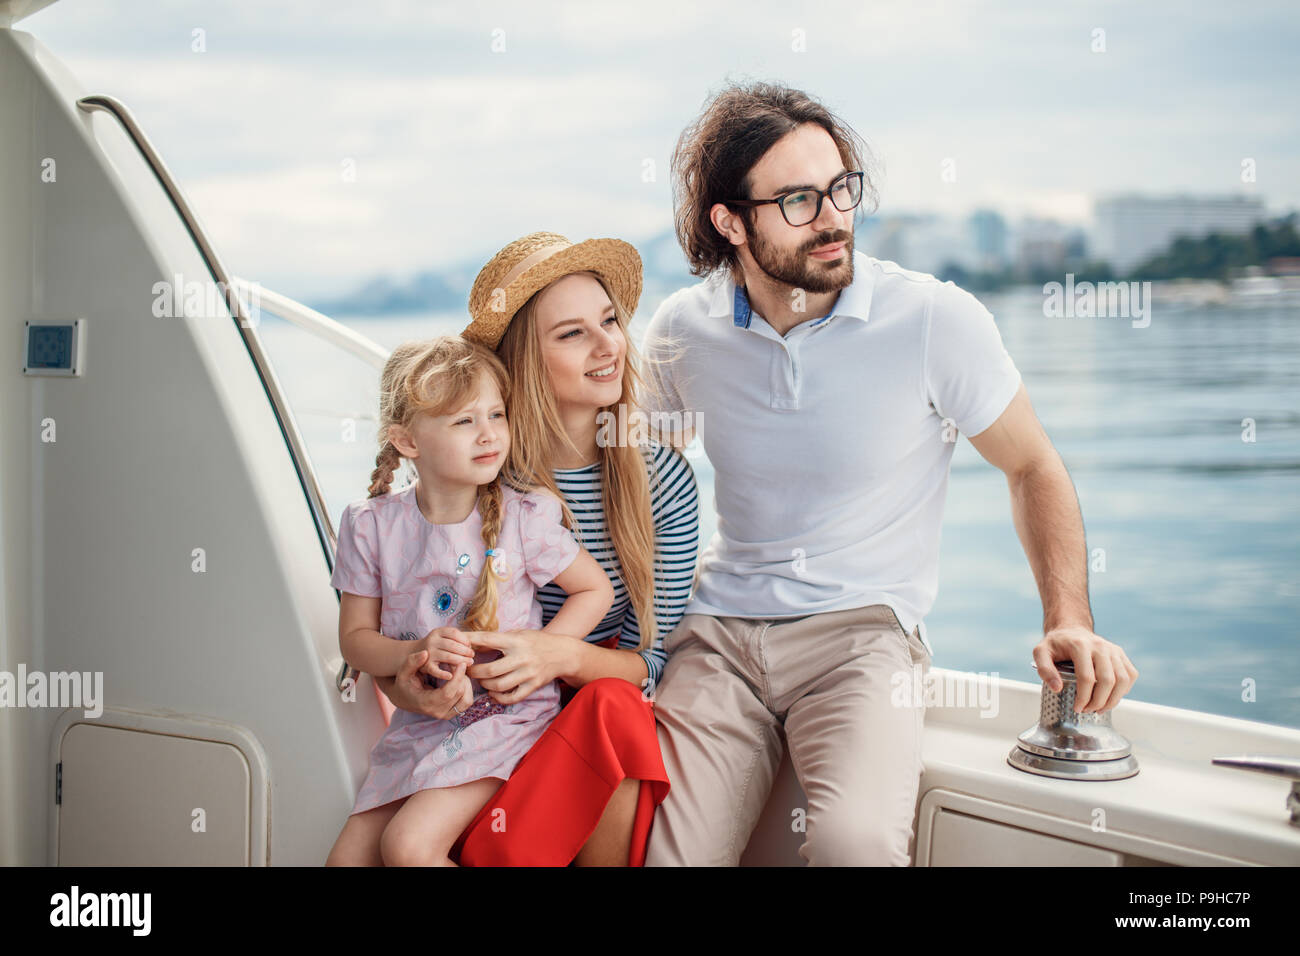 Cute married couple with adorable little daughter looking happy while enjoying romantic trip on the holydays, sailing on sea boat, spending nice time  - Stock Image